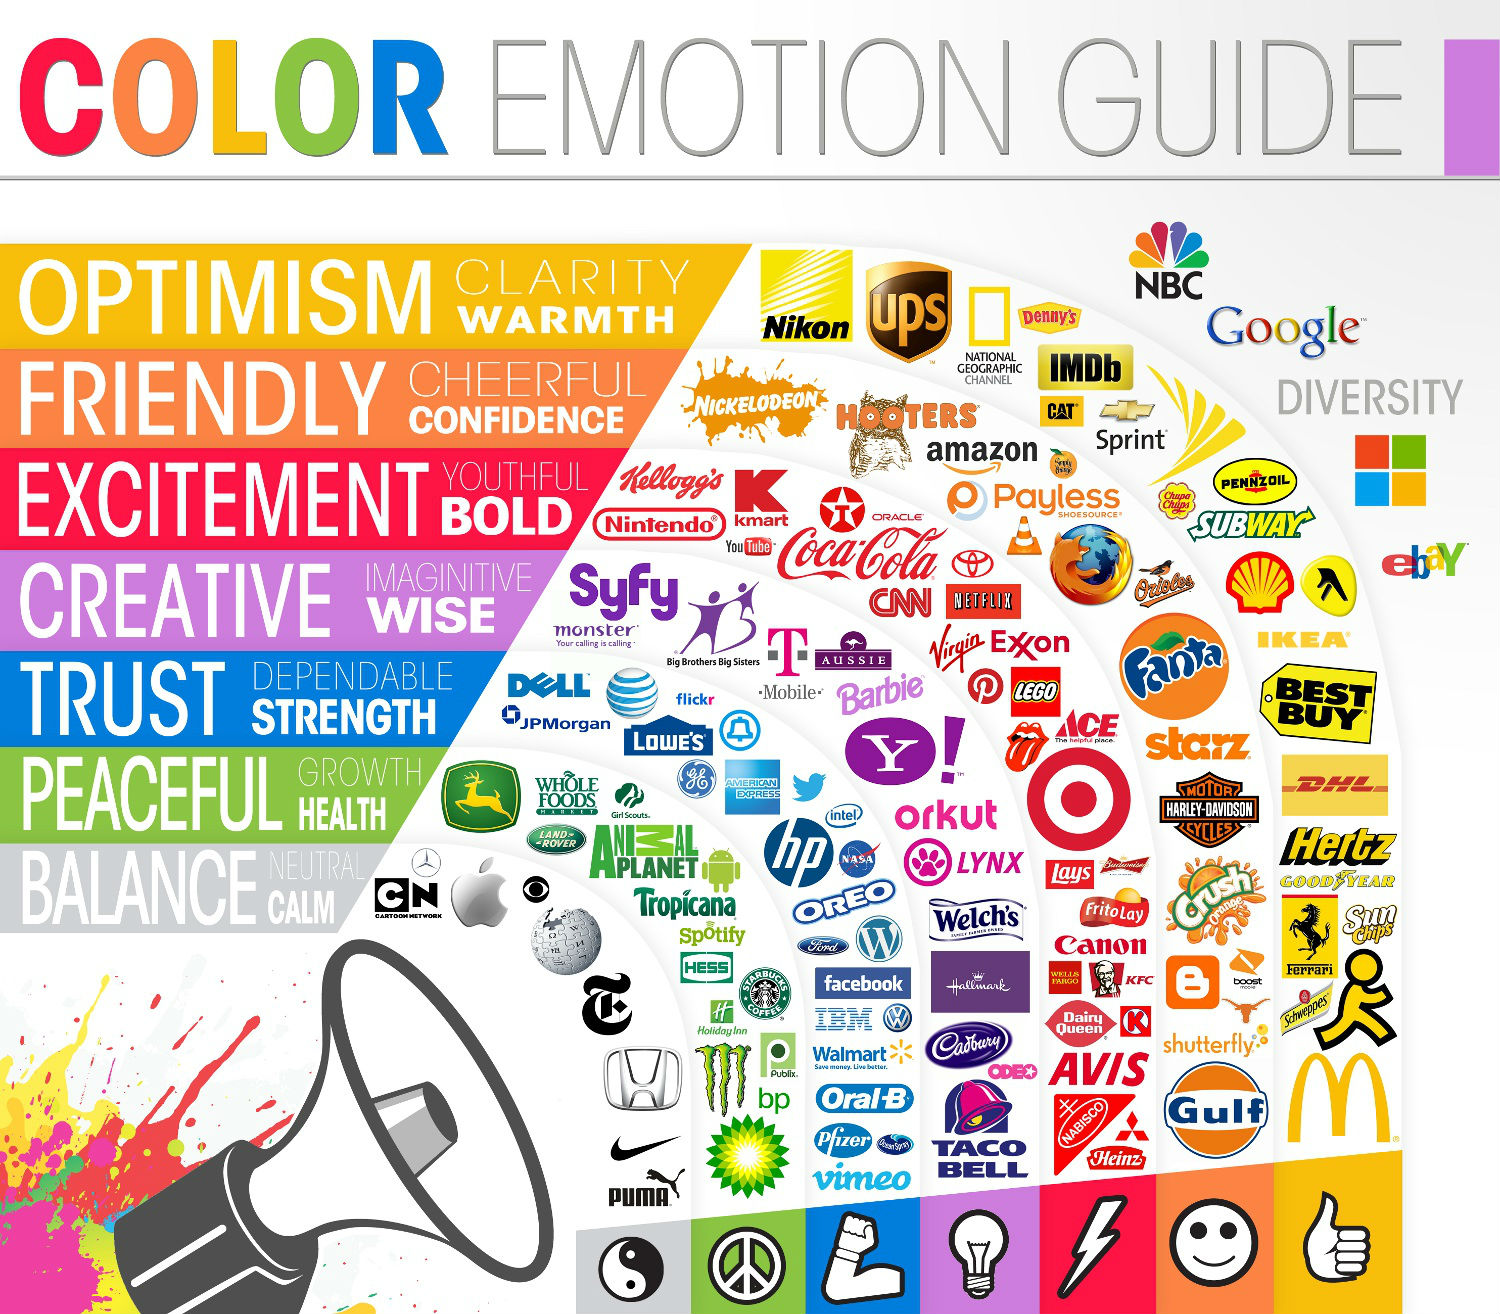 The Power of Color and Emotion [Infographic]